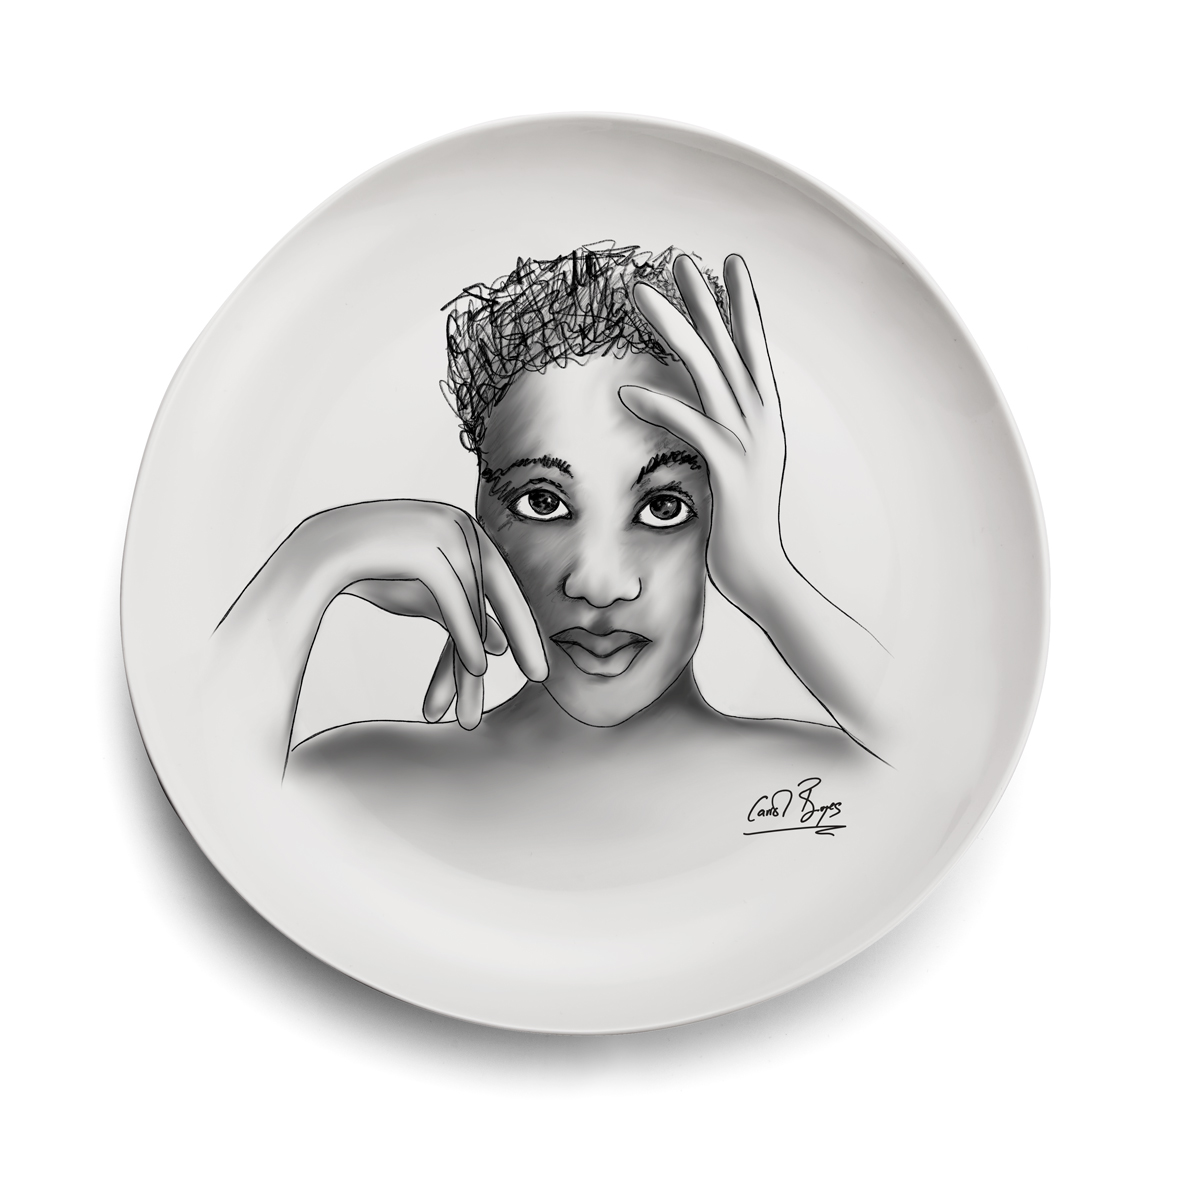 DINNER PLATE - in vogue